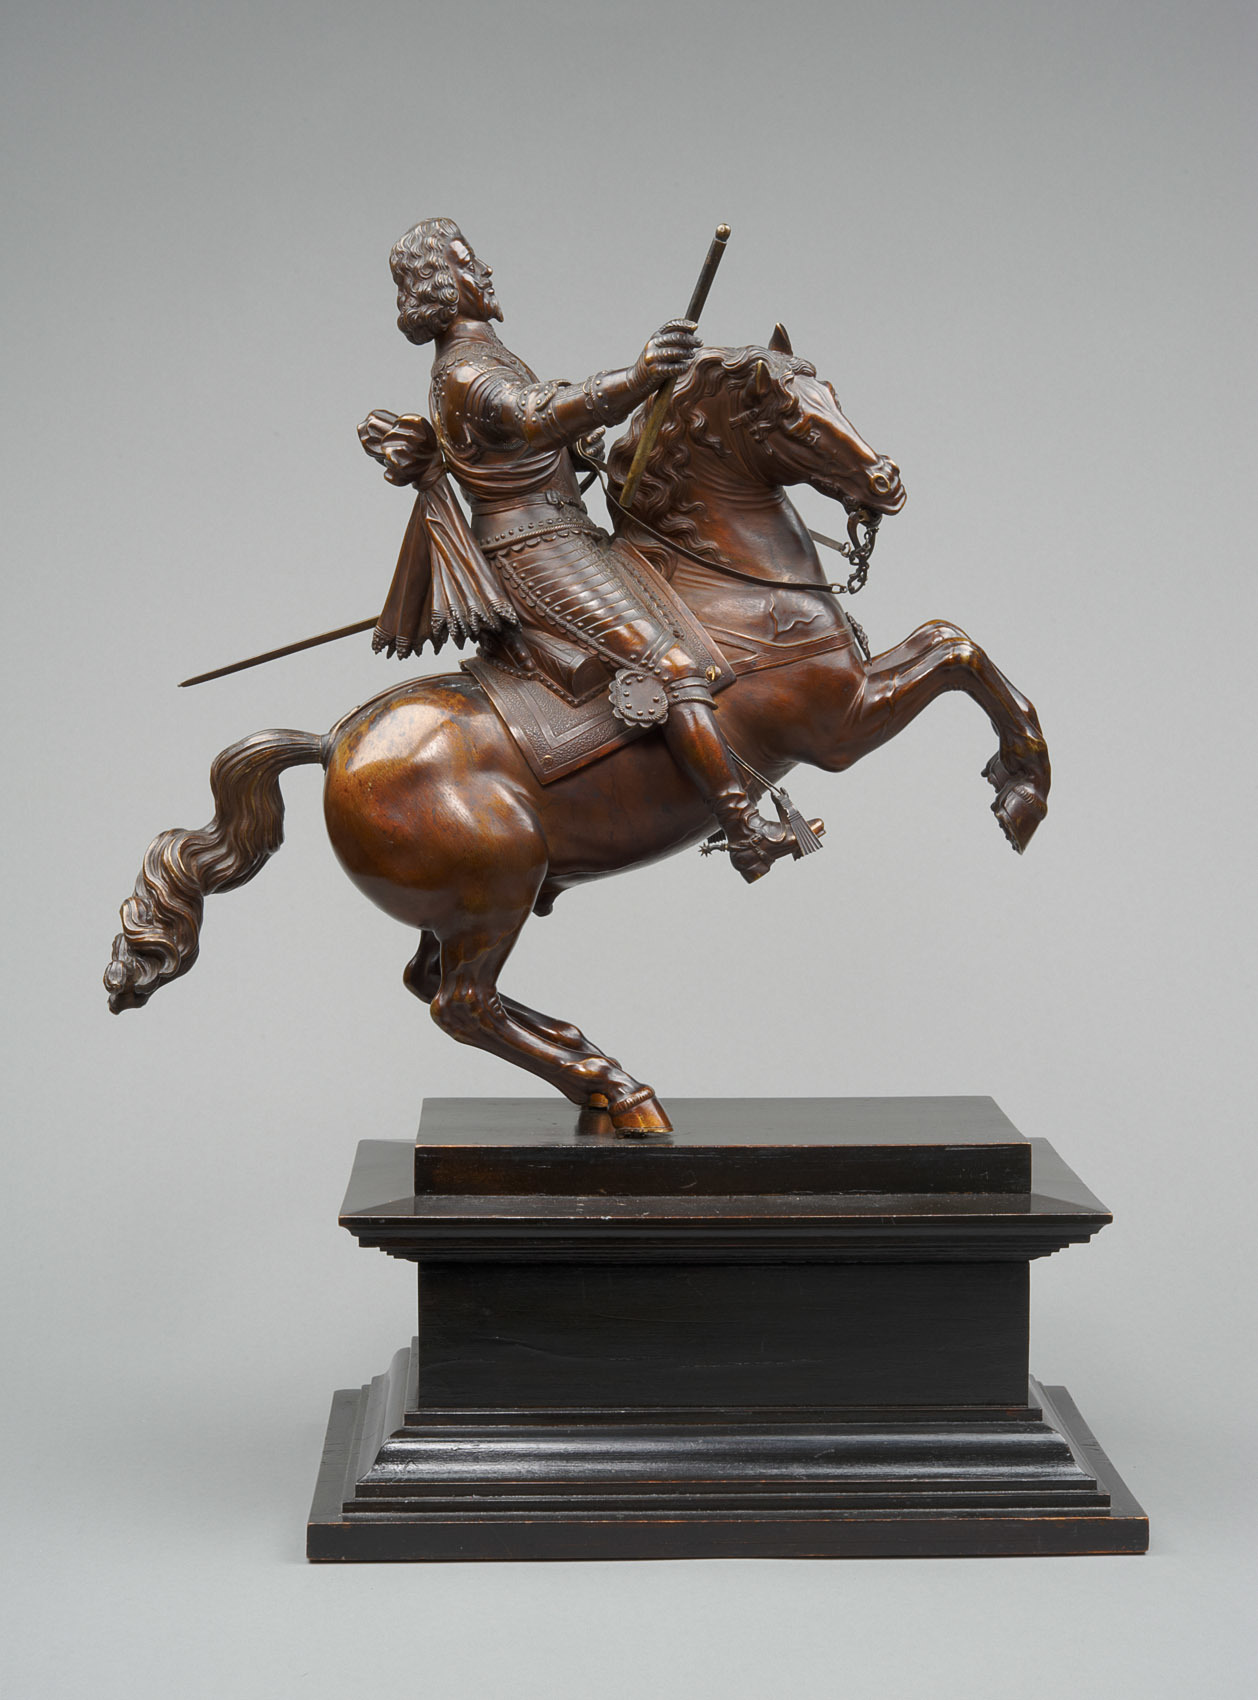 Emperor Ferdinand II on horseback, 2nd quarter of the 17th century, Caspar Gras